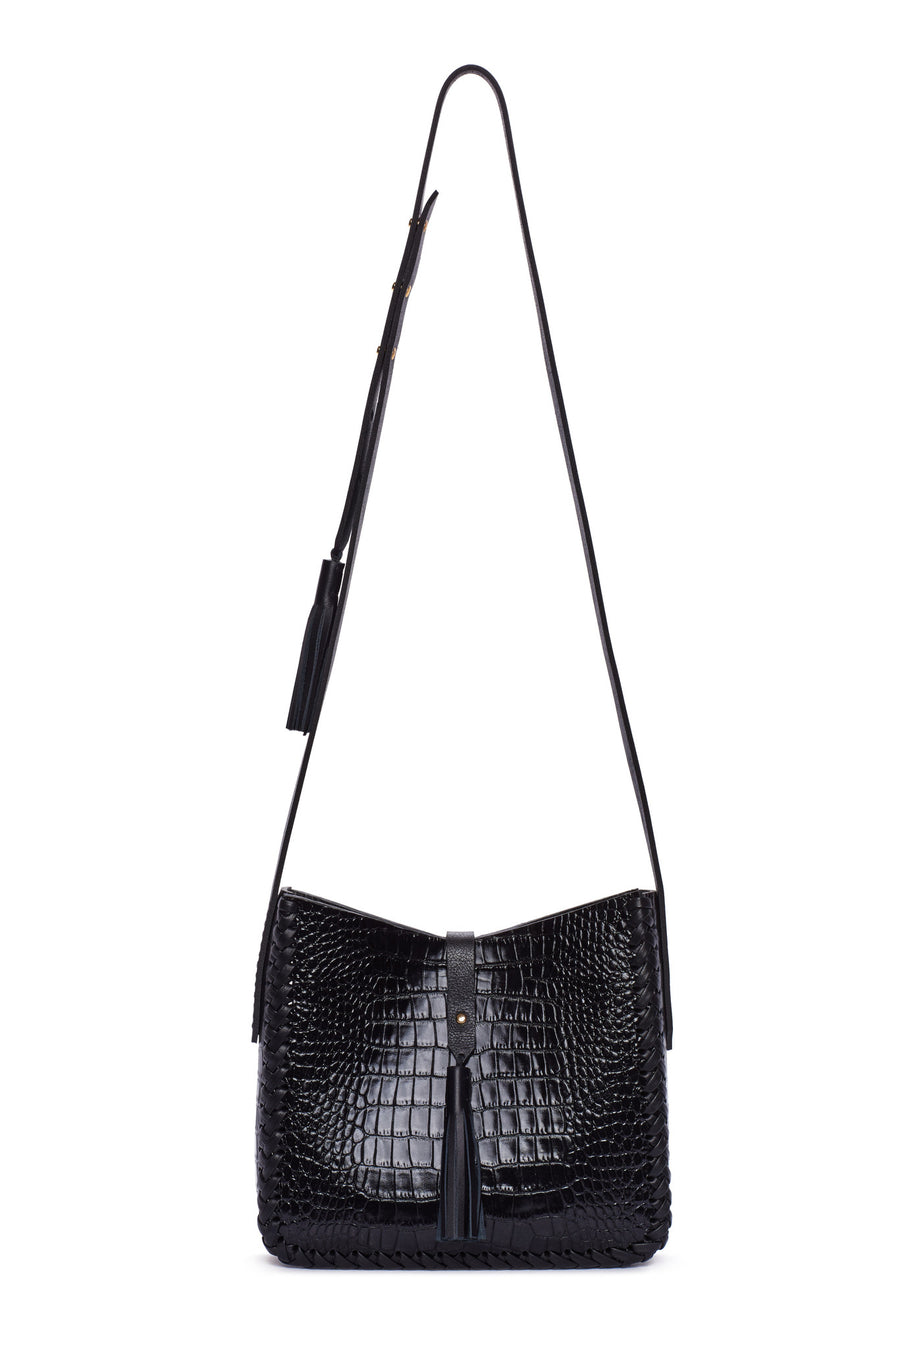 Black Embossed Croc Crocodile Alligator Cow Cowhide Leather Saddle Bag Wendy Nichol Handbag Purse Designer Handmade in NYC New York City black sued Whipstitch V Edge Open Square Structured Braided Adjustable Strap Fringe Tassels Tassel High Quality Leather